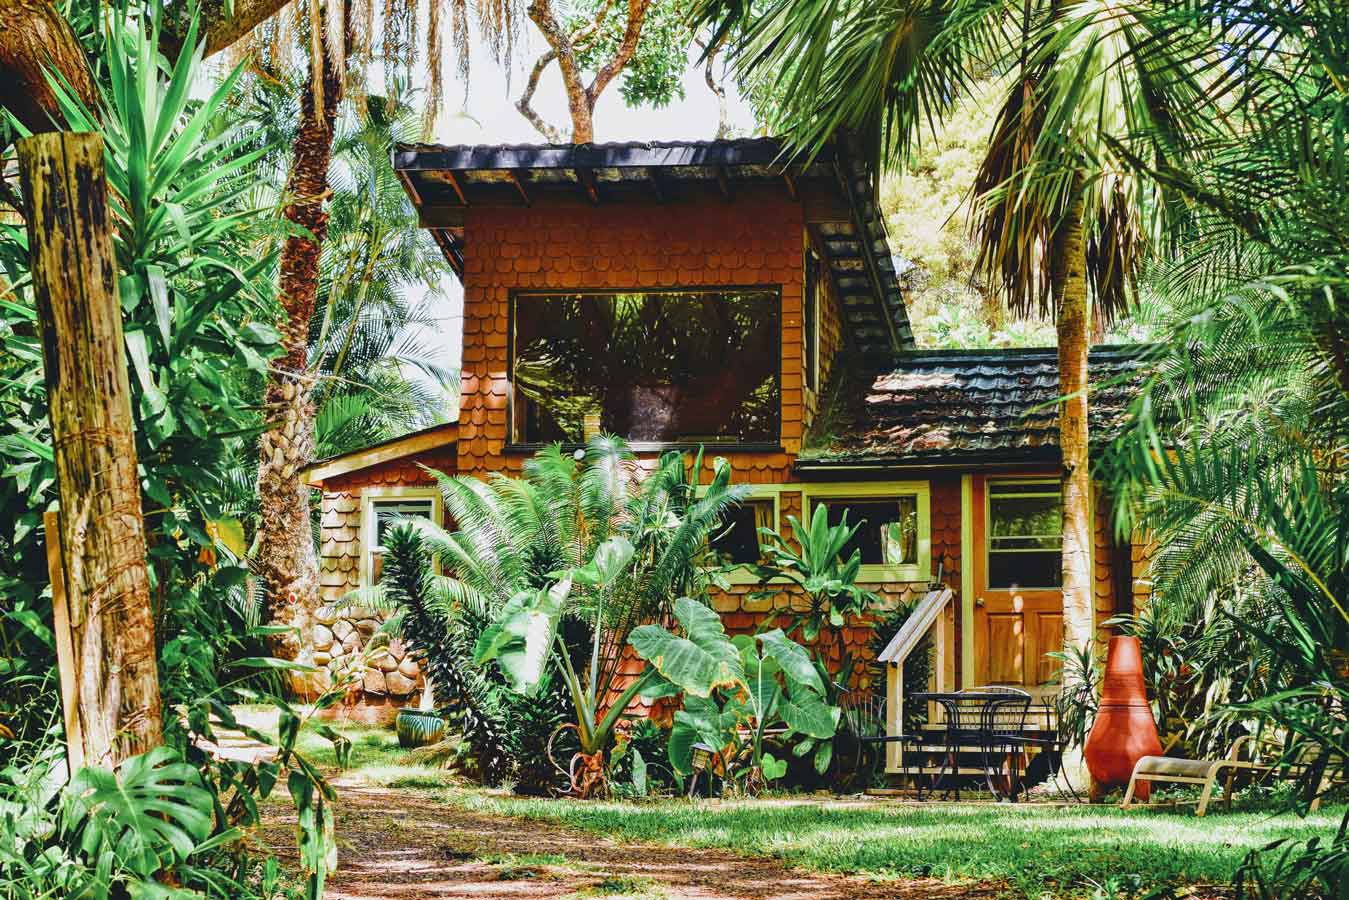 Behold Retreats, a wellness company that specialises in the therapeutic use of plant-based medicine to aid in personal and spiritual growth. Plant medicine luxury retreat, ayahuasca, psychedelics, psilocybin, 5-meo DMT.